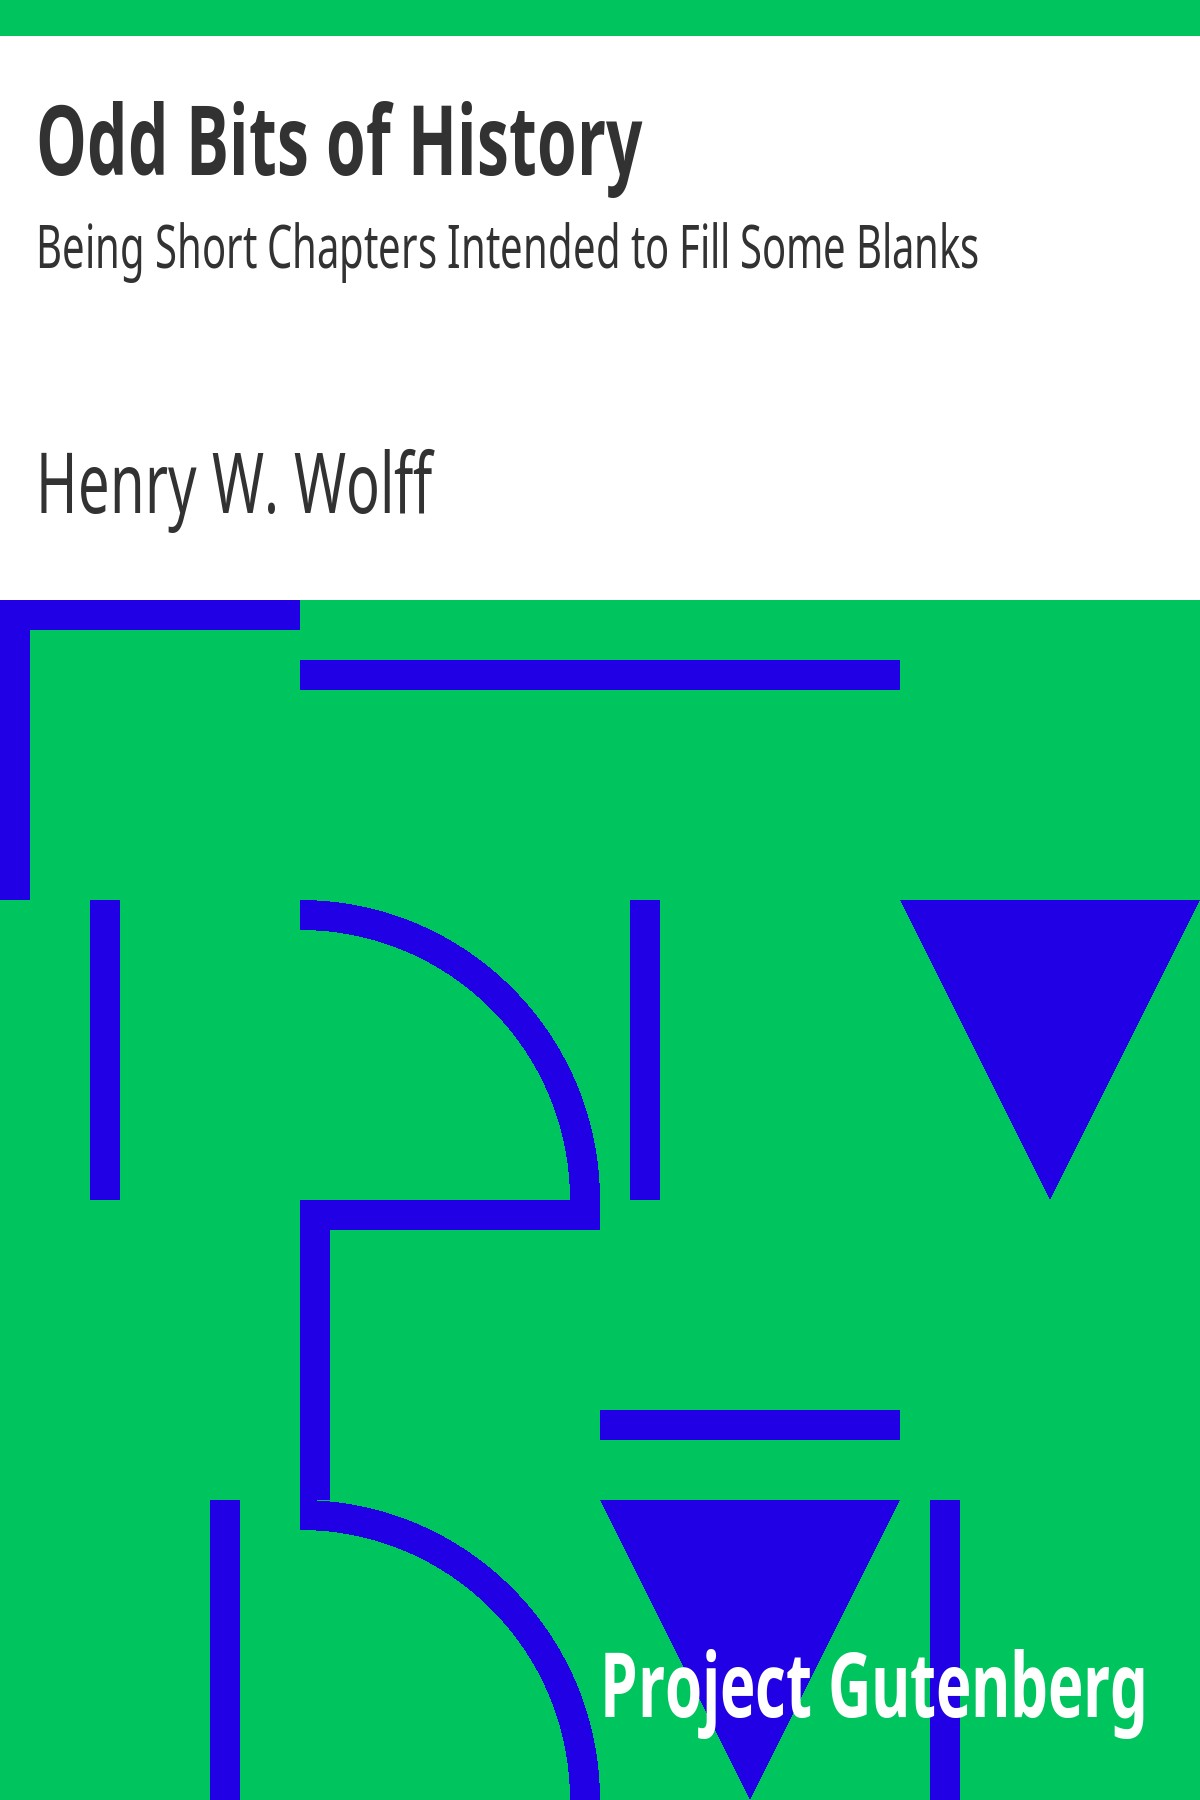 Henry William Wolff Odd Bits of History: Being Short Chapters Intended to Fill Some Blanks